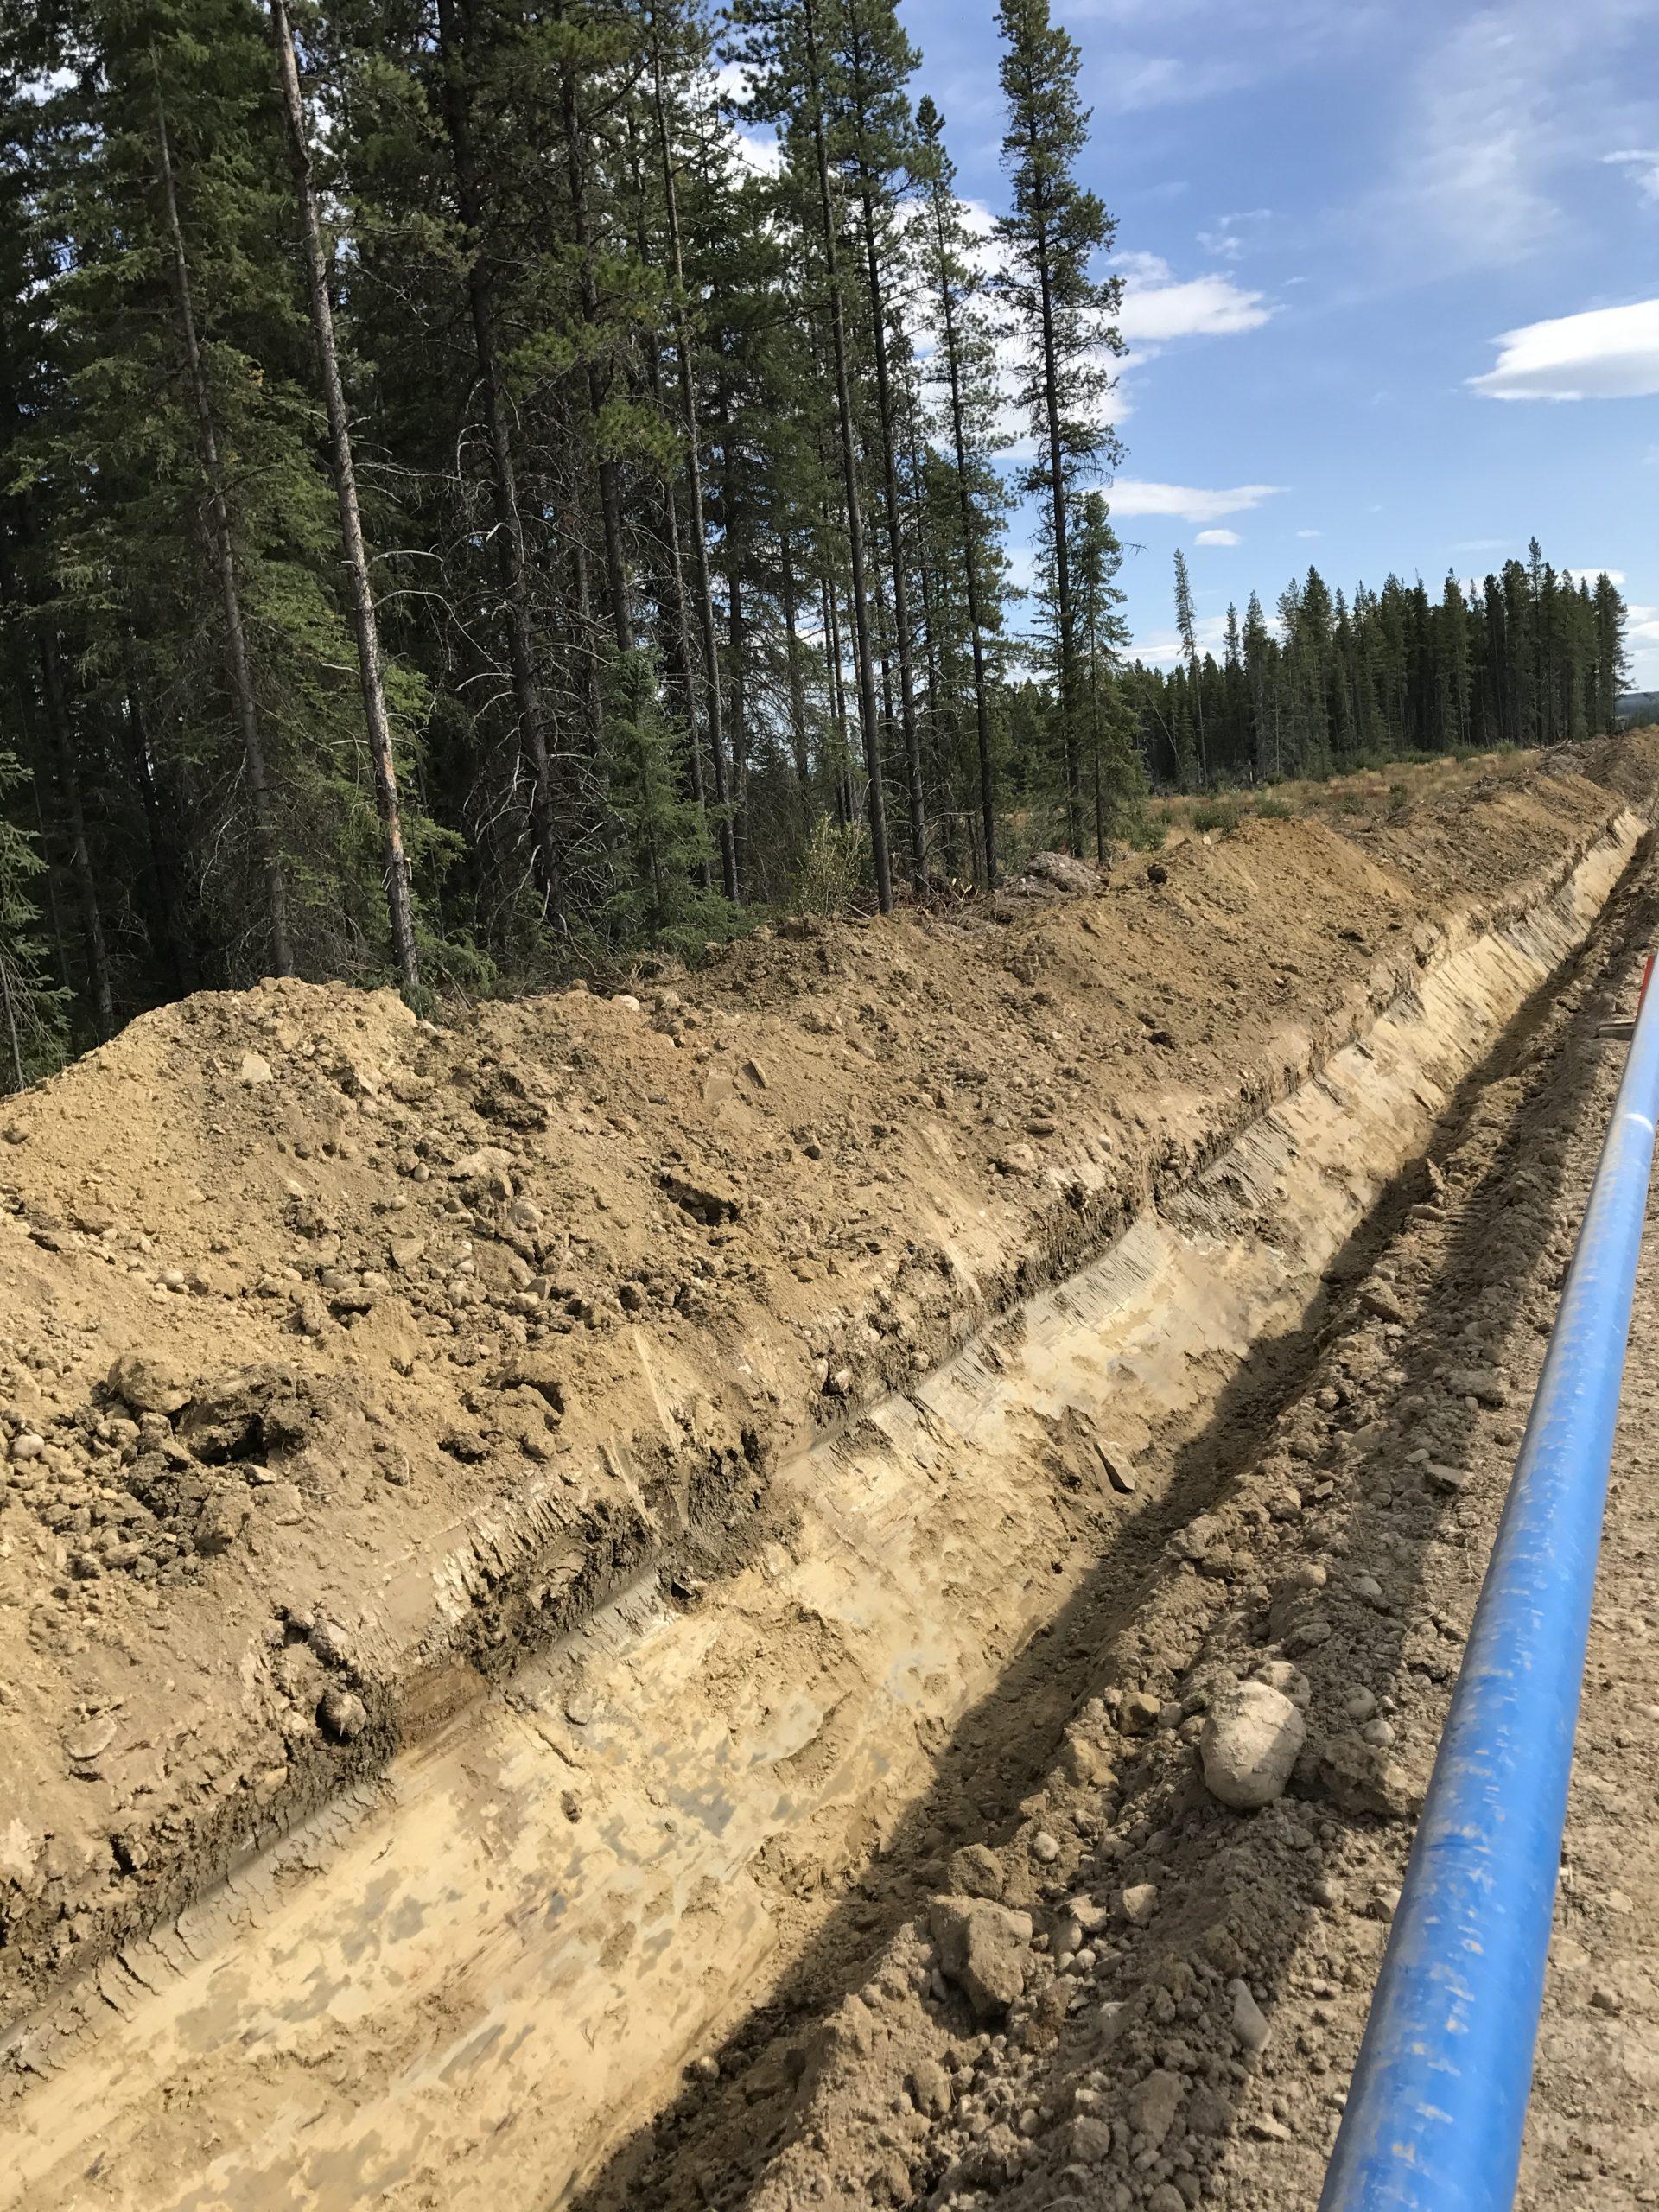 Pipeline laying next to open excavation